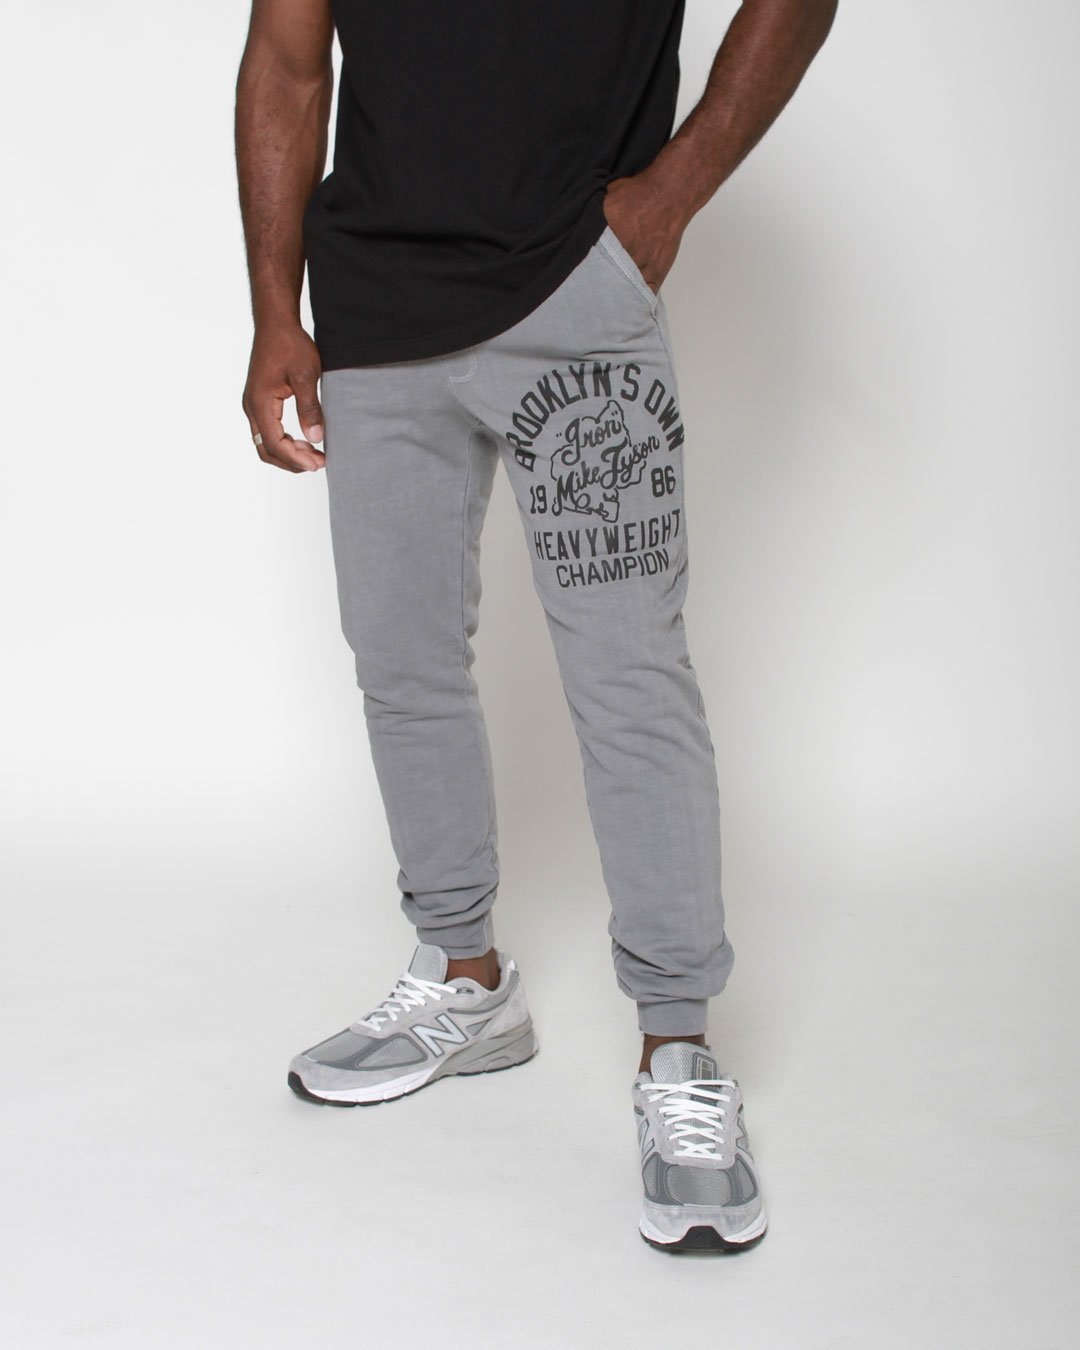 Mike Tyson Brooklyn's Own Sweatpants